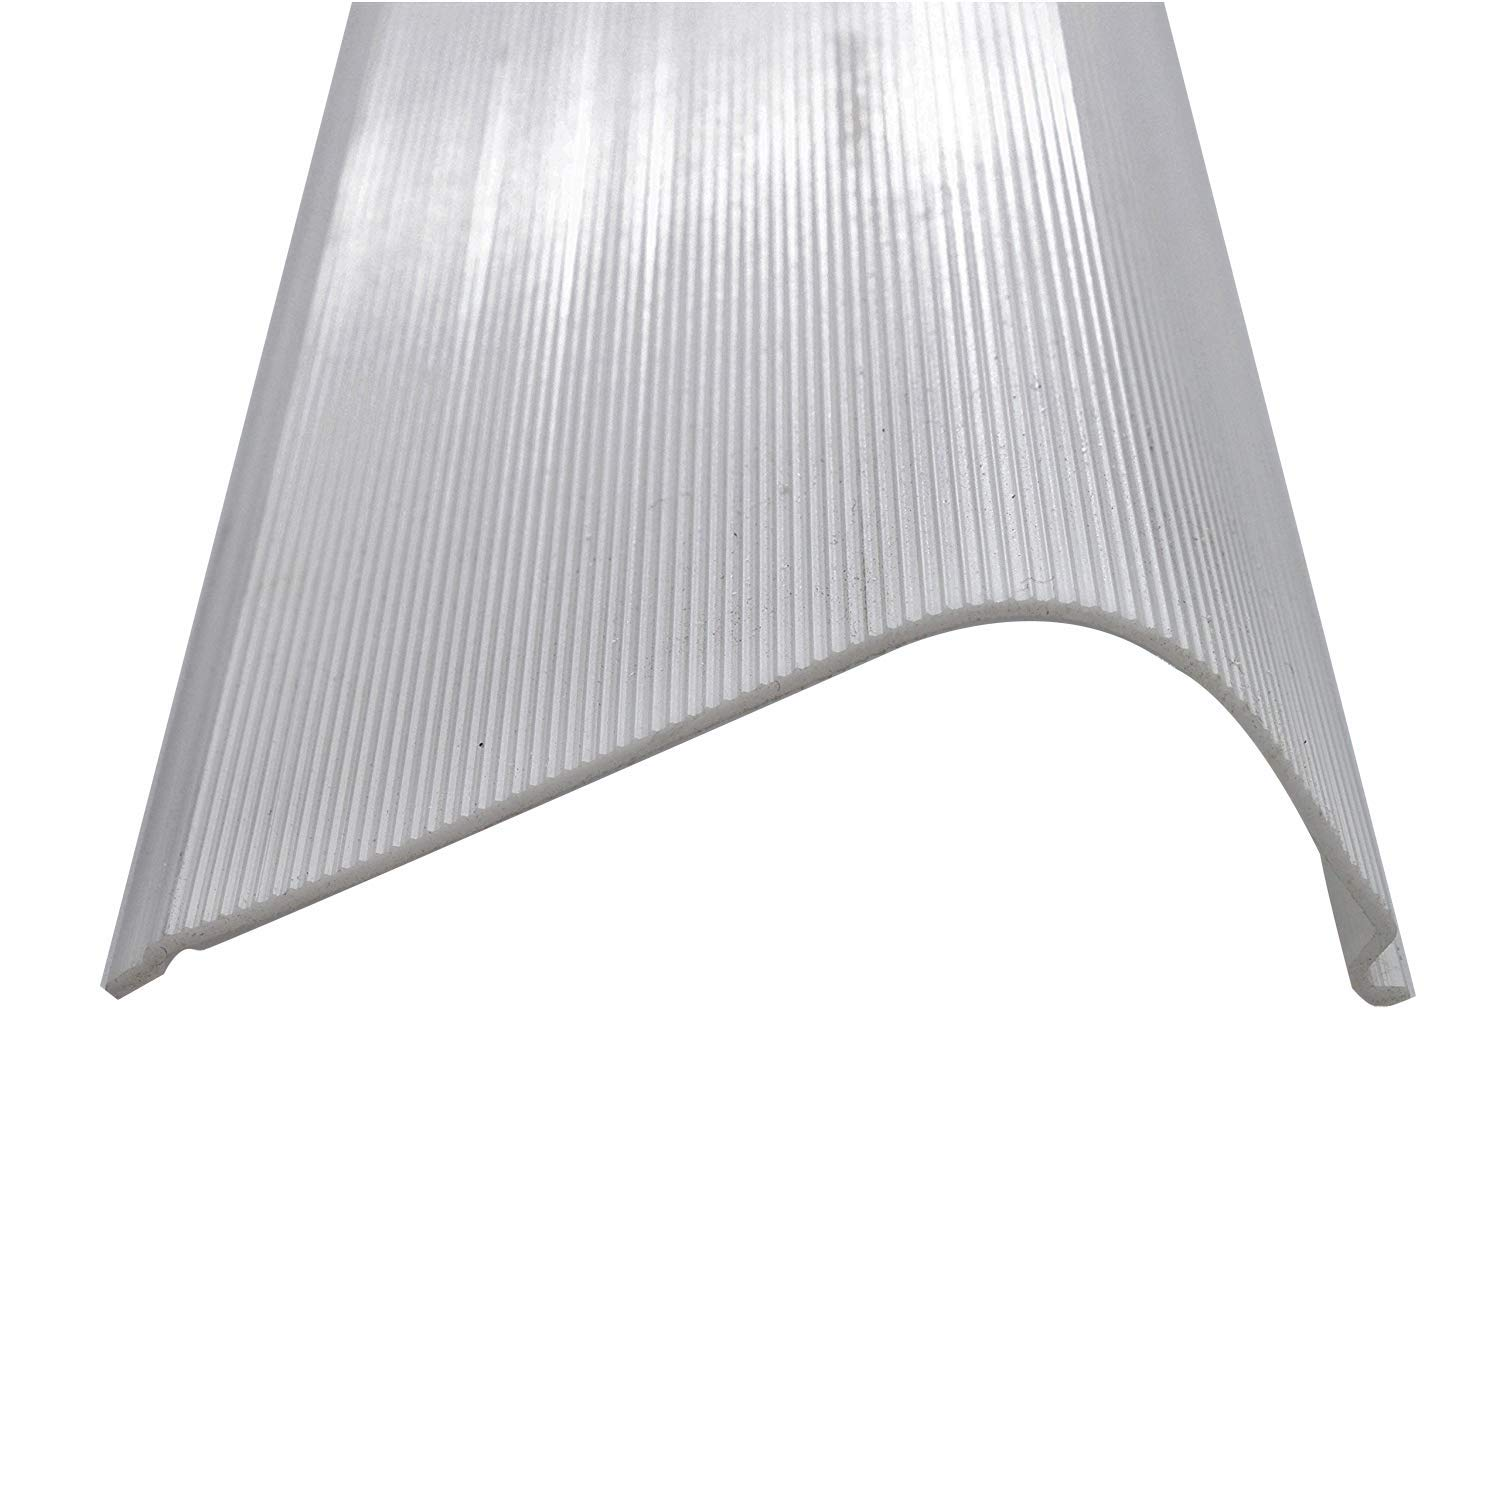 """18"""" Under Cabinet Diffuser White Ribbed Replacement Cover Lens (Please Check The Size Is Correct Before Ordering)"""